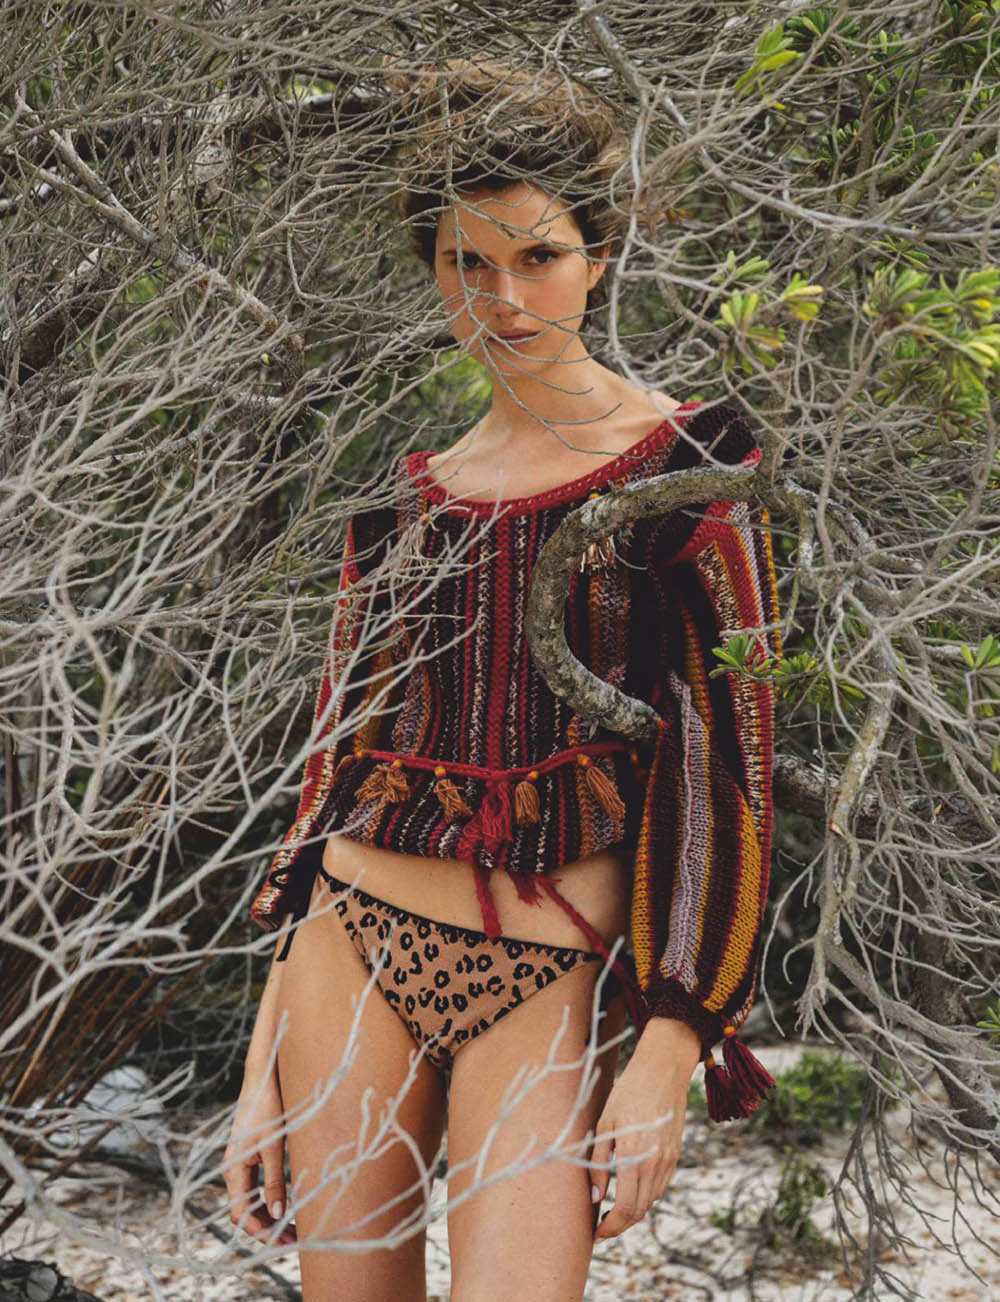 Cato van Ee by Gilles Bensimon for Elle Spain May 2020